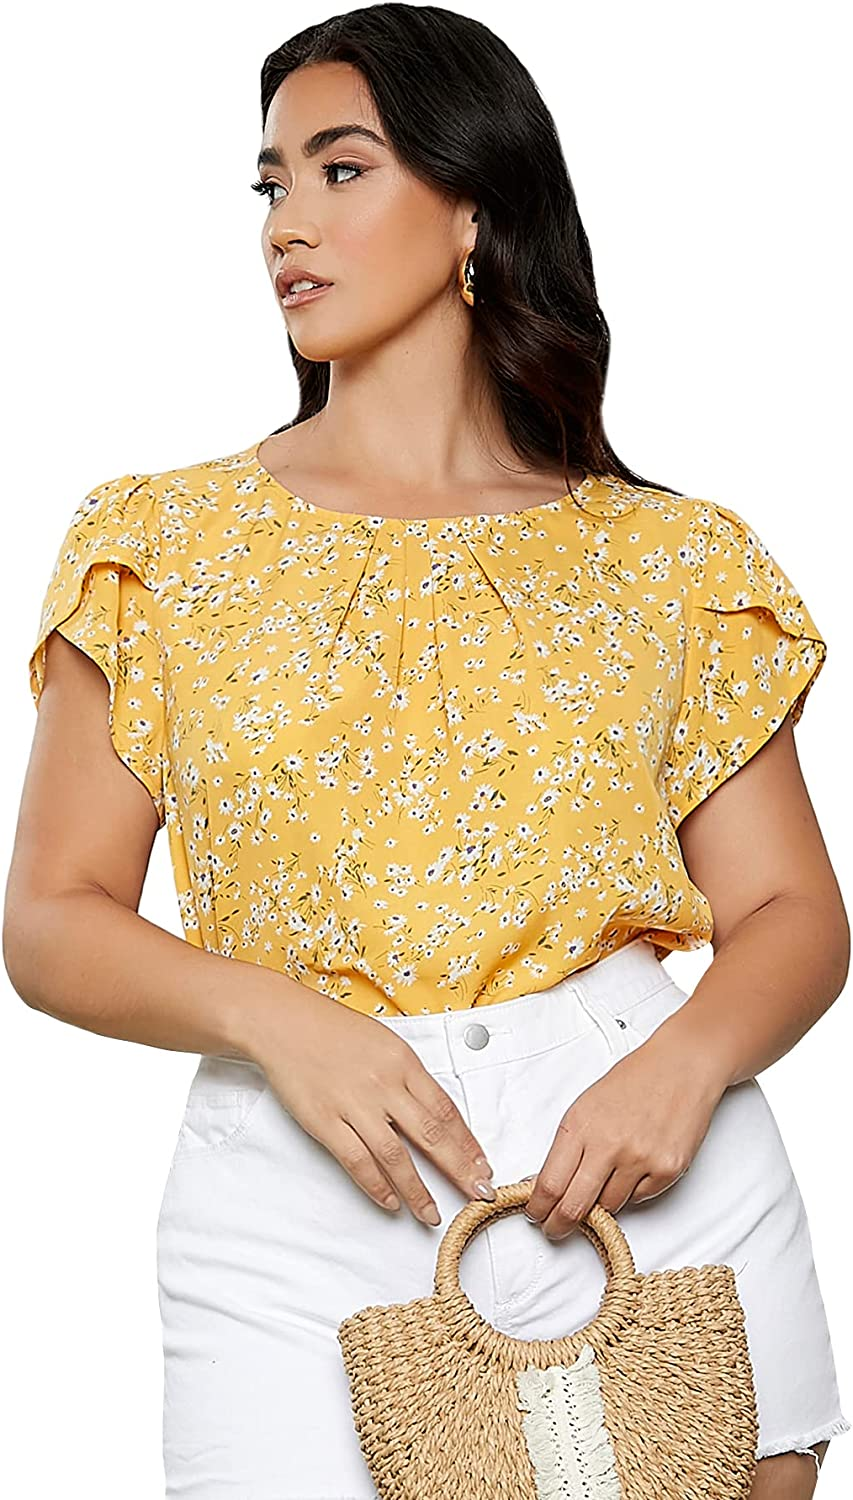 Milumia Women's Short Sleeve Casual Floral Print Blouse Tops